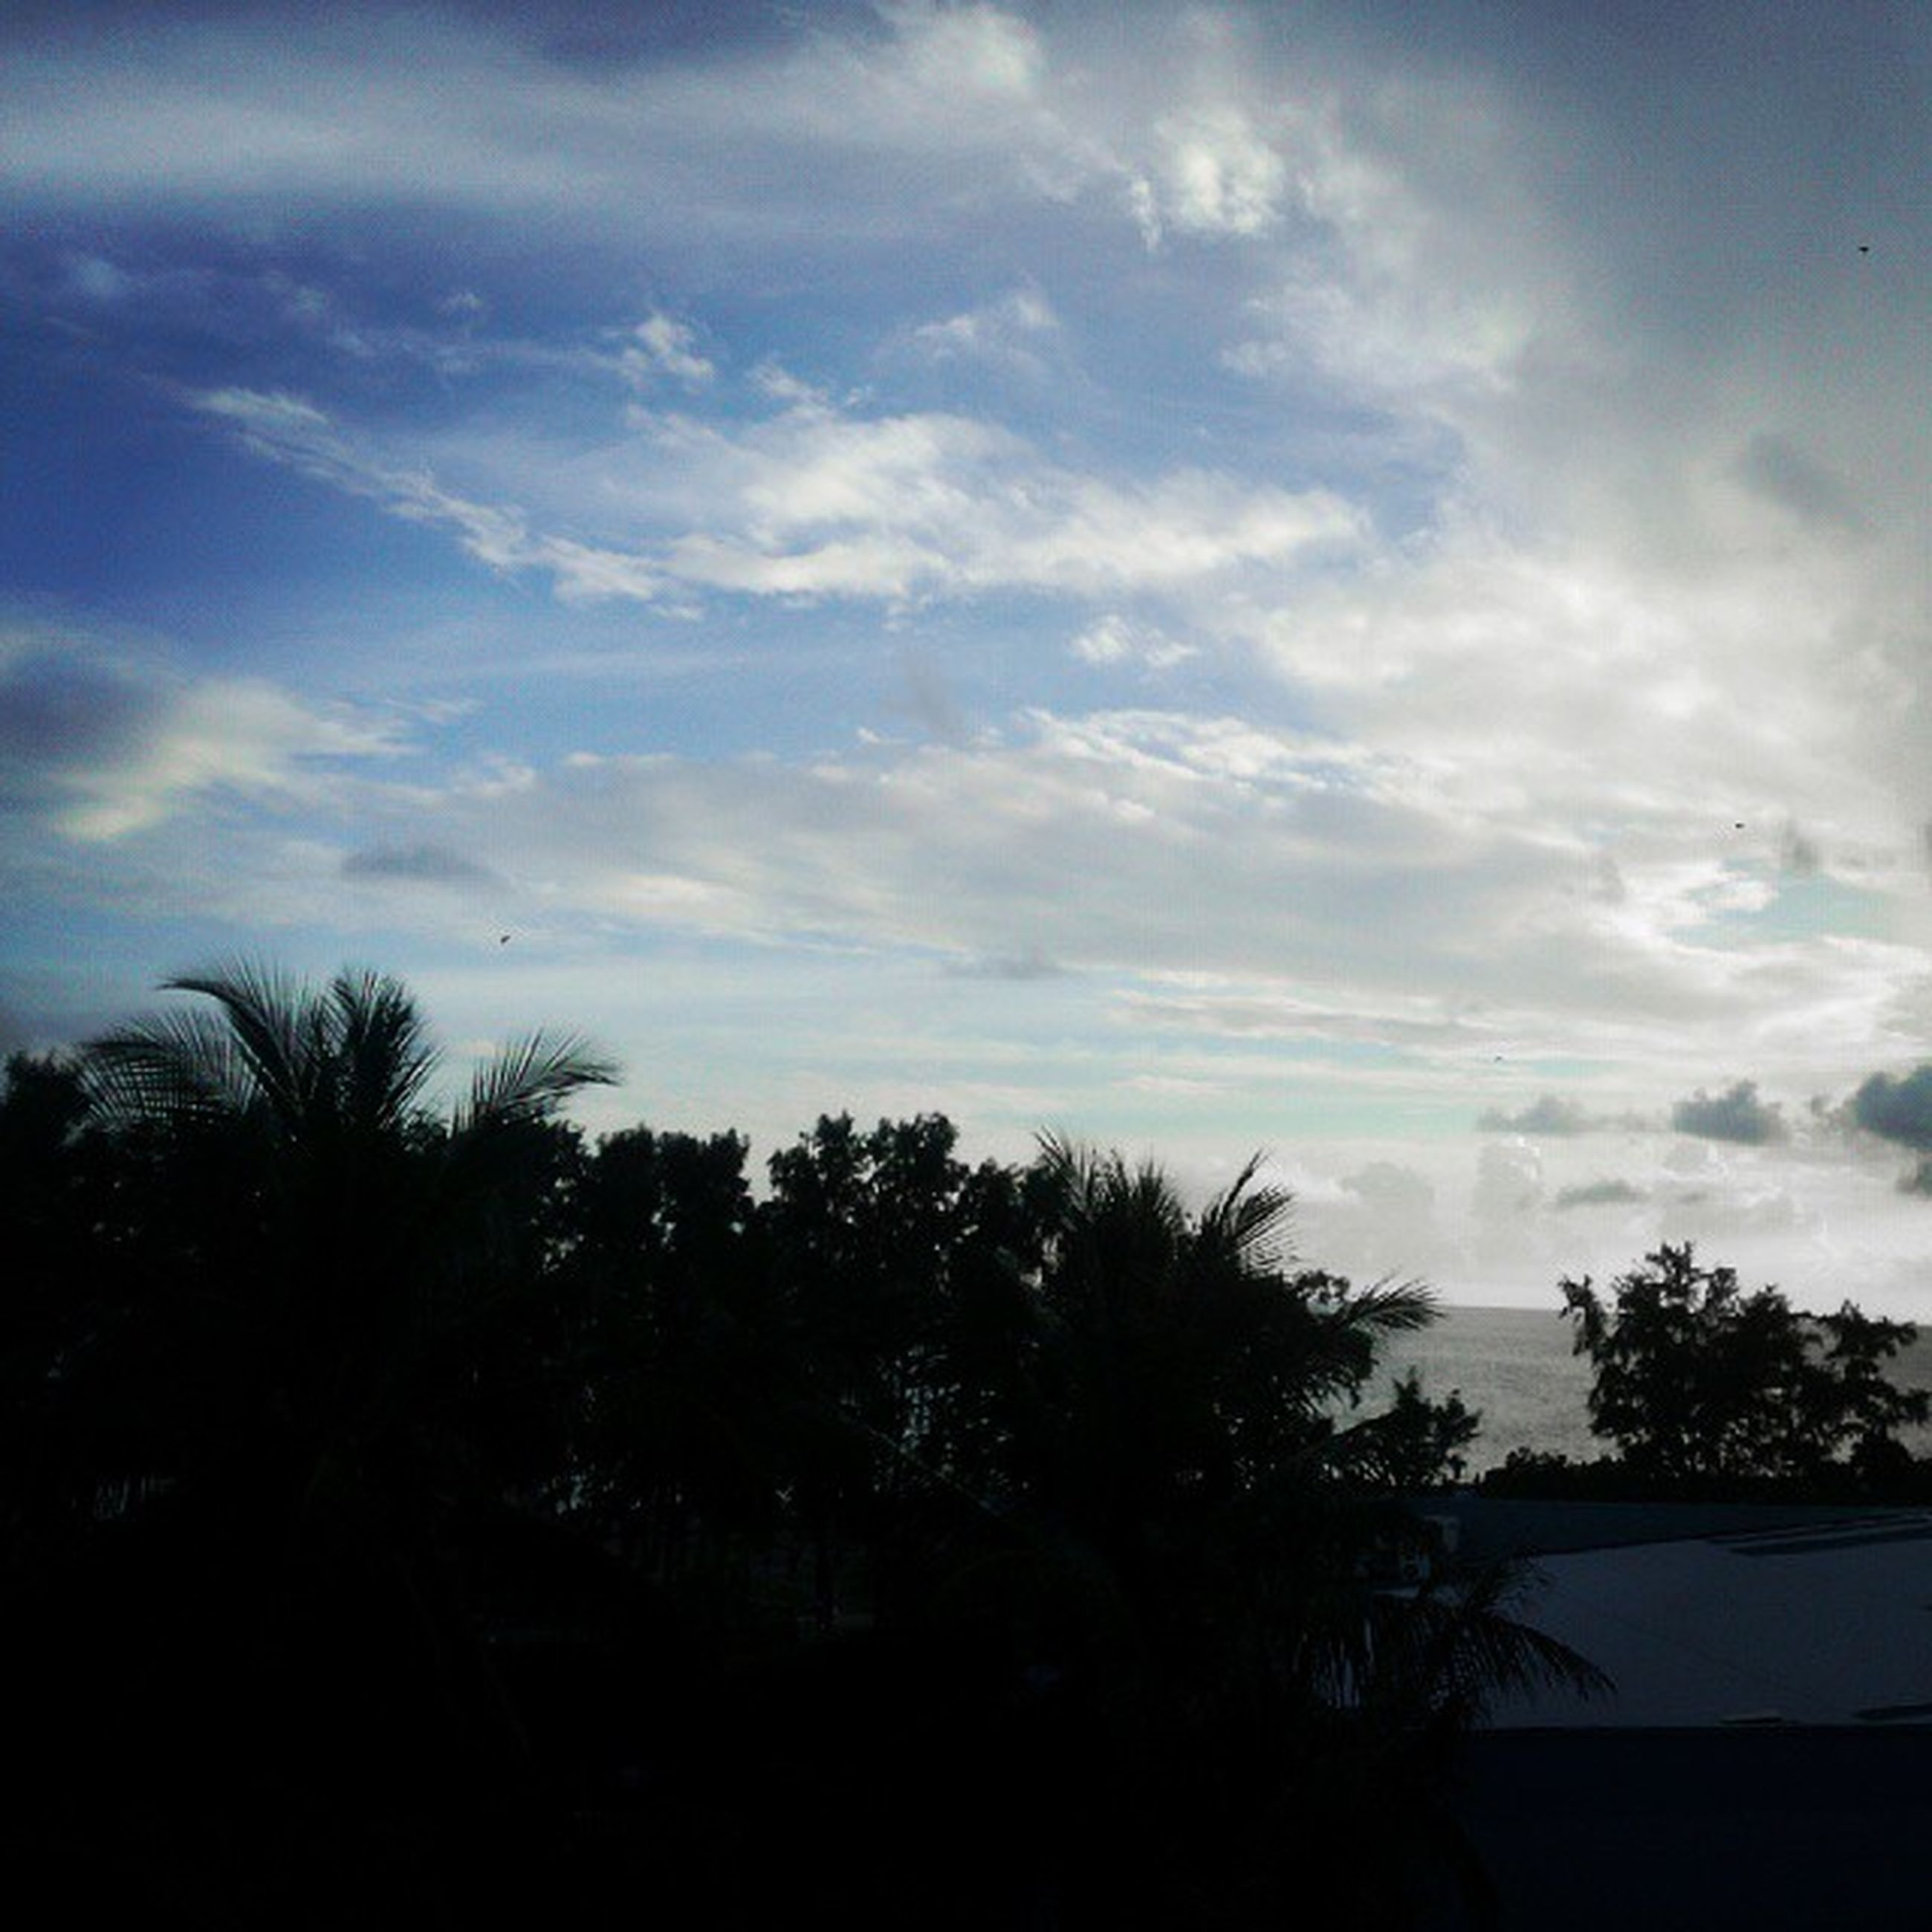 tree, silhouette, sky, cloud - sky, tranquility, tranquil scene, beauty in nature, scenics, nature, sunset, cloud, cloudy, growth, palm tree, dusk, outdoors, landscape, idyllic, low angle view, no people